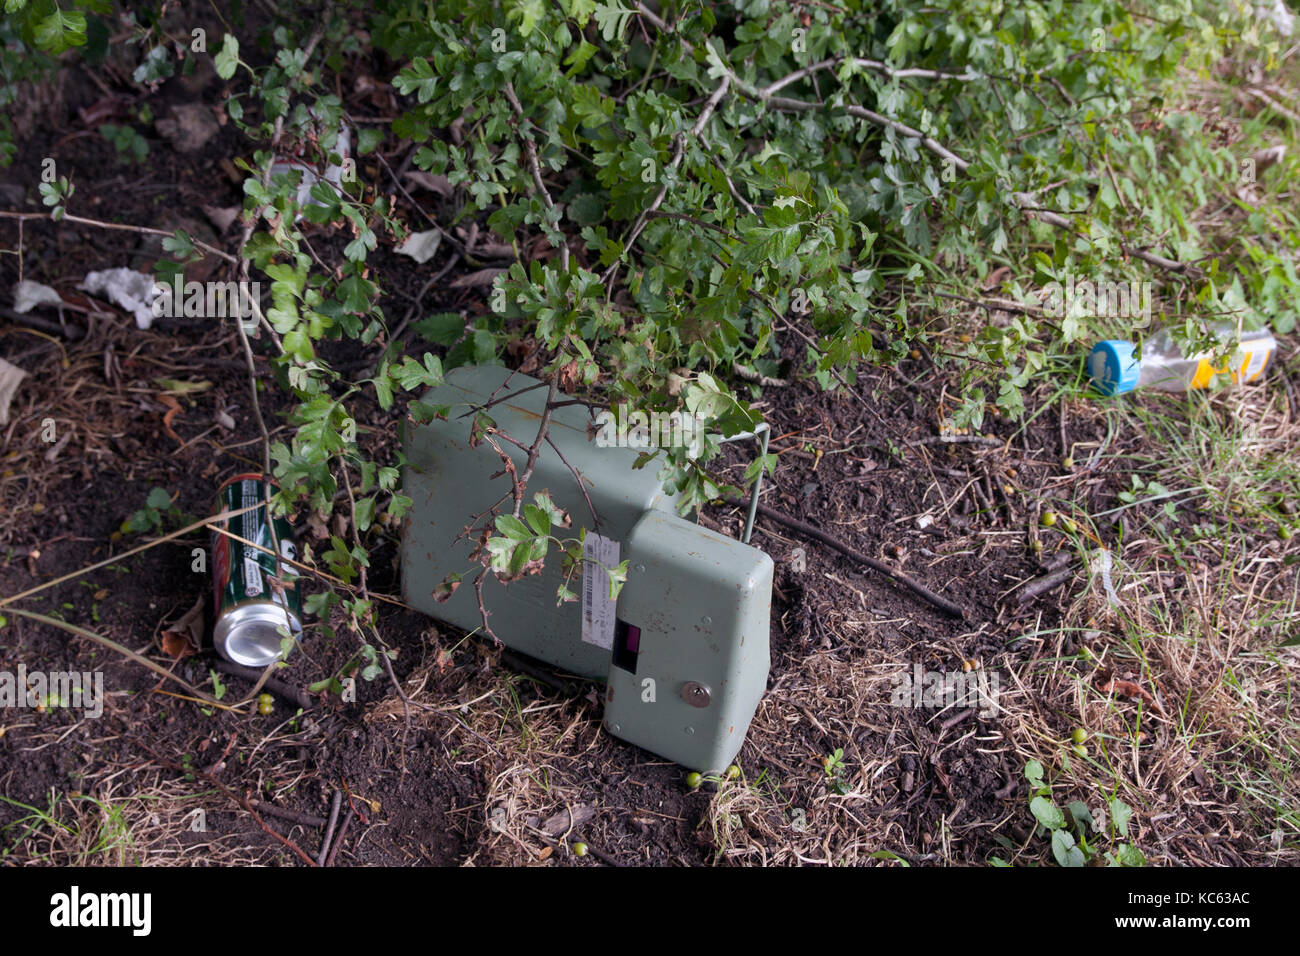 empty money safe abandoned under bushes with bits of litter, England Stock Photo